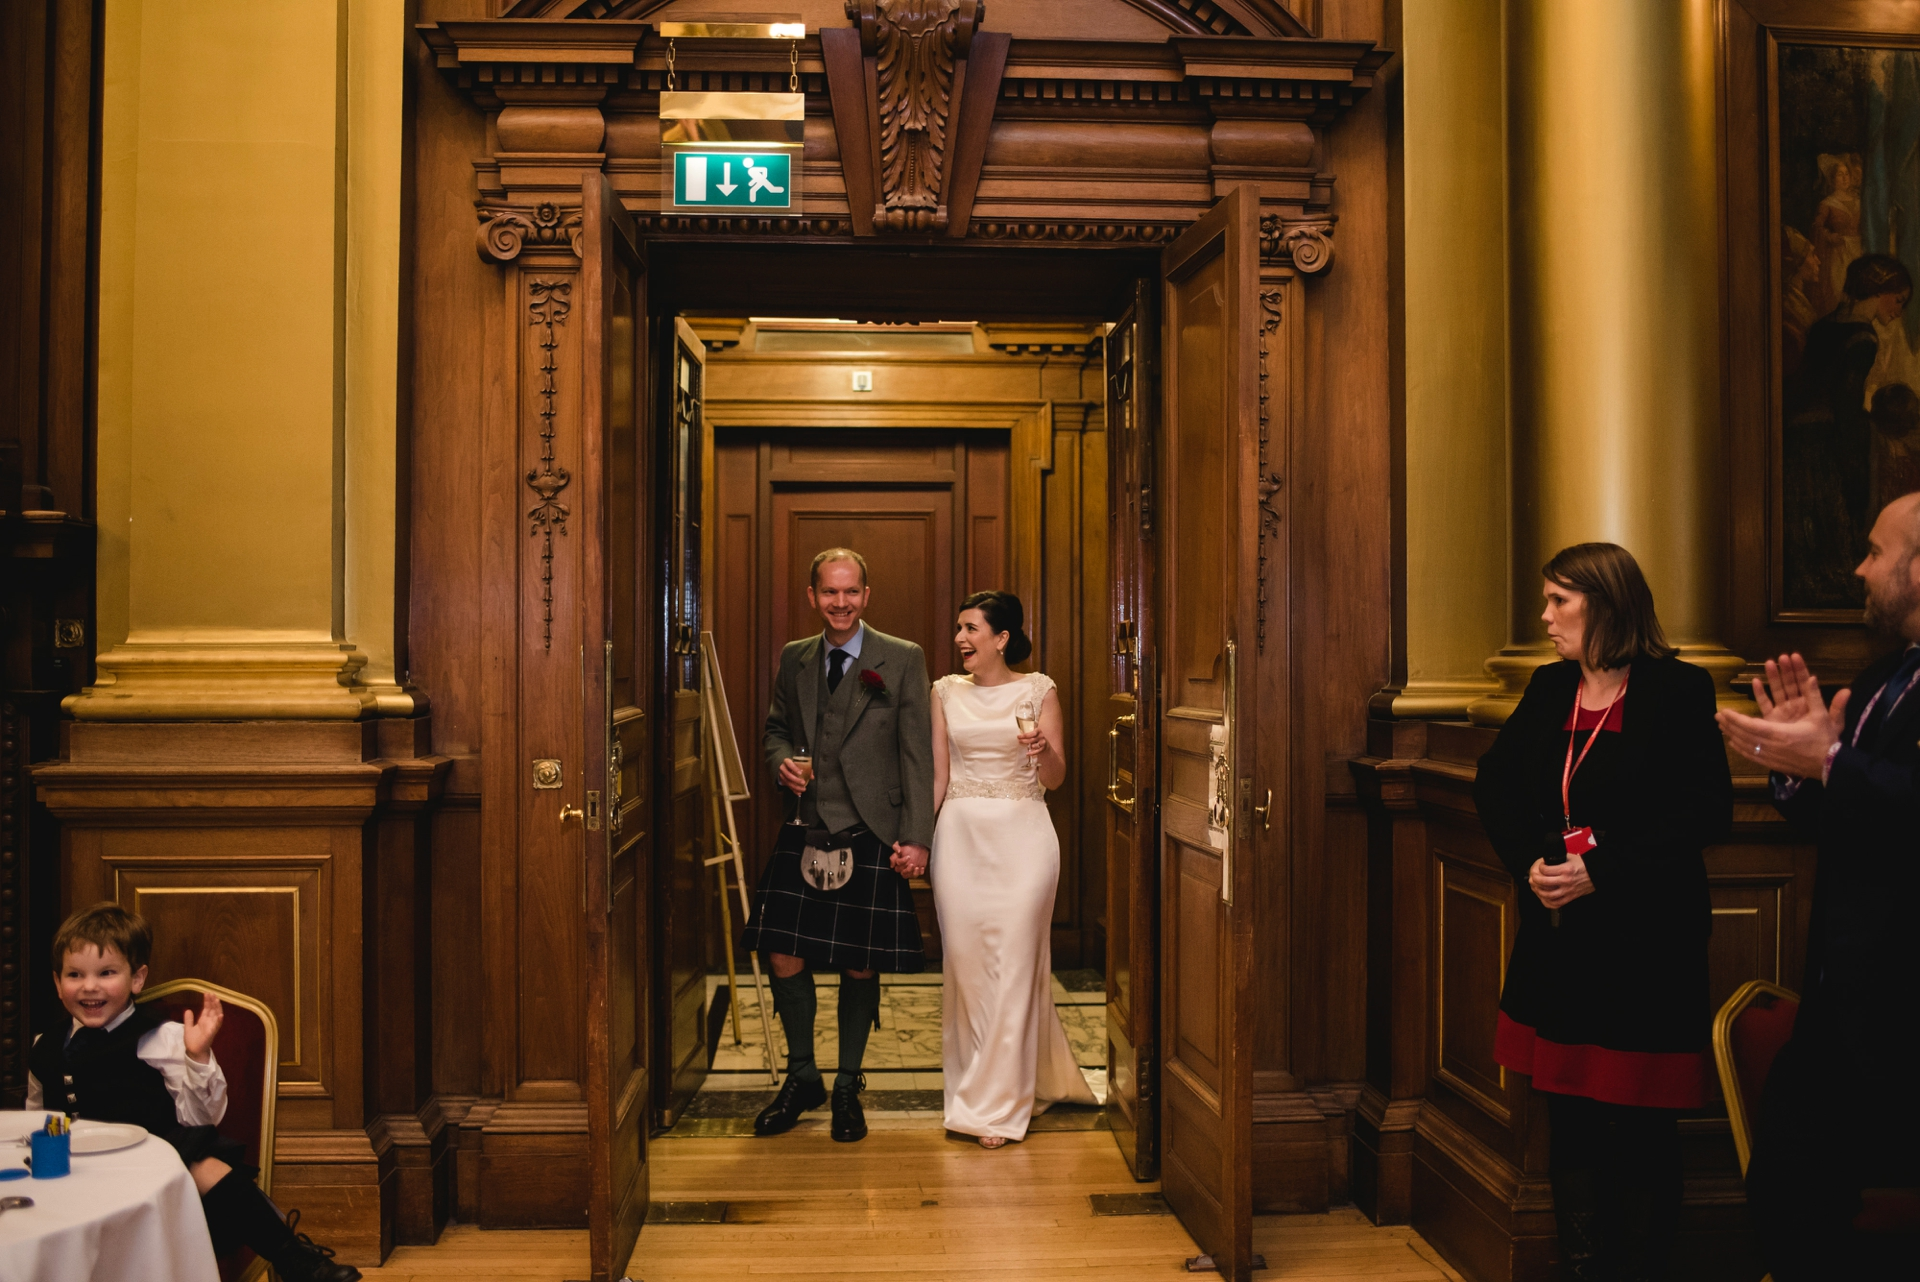 Edinburgh City Chambers Wedding_0031.jpg